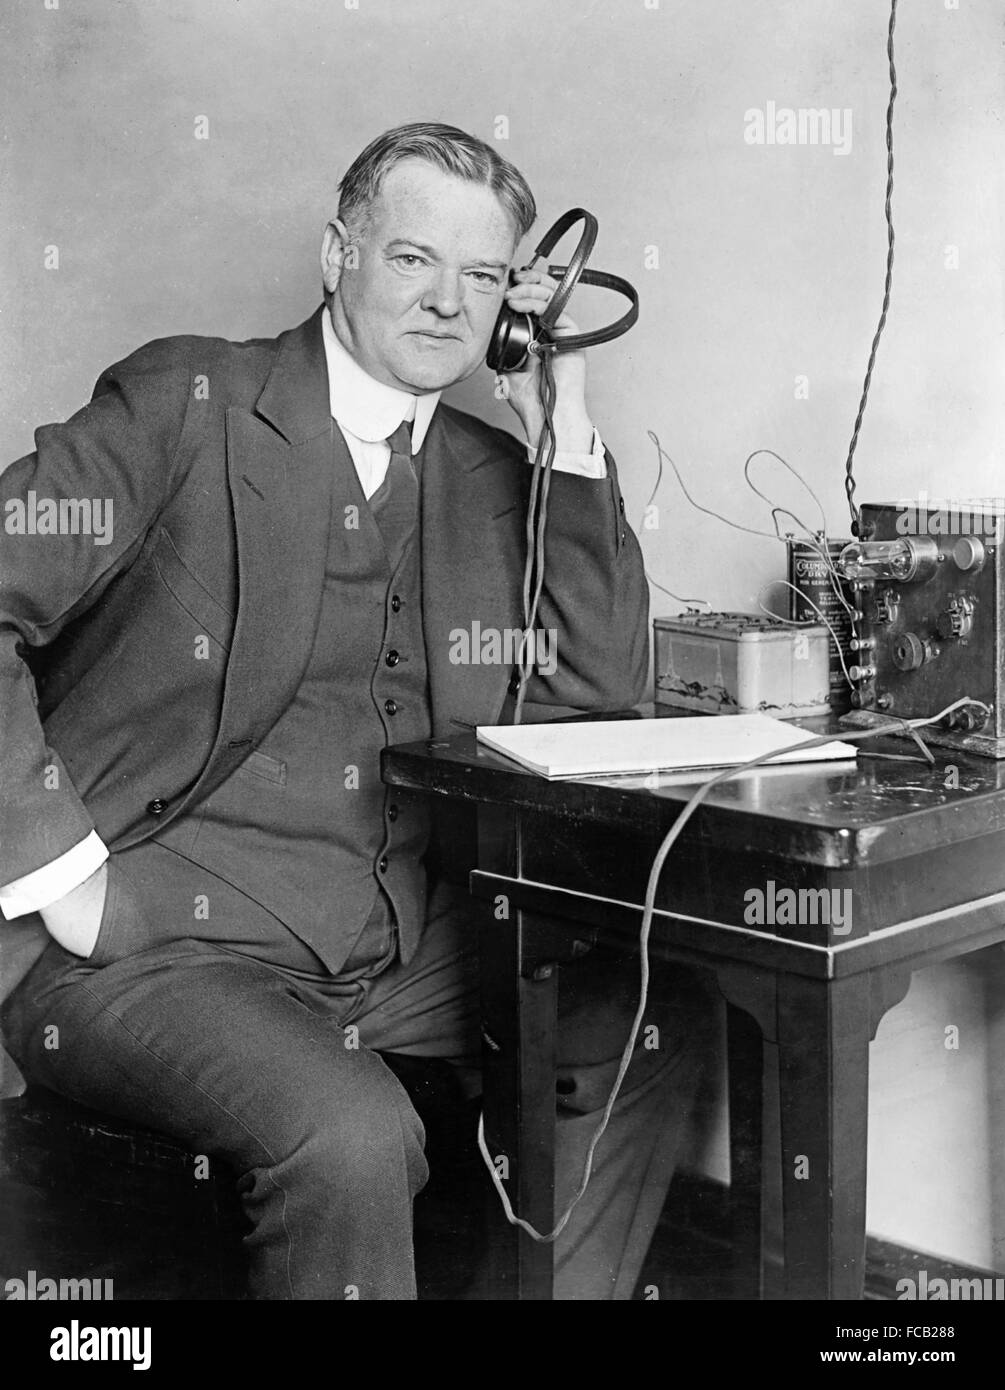 Herbert Hoover, the 31st President of the USA, c.1925 - Stock Image